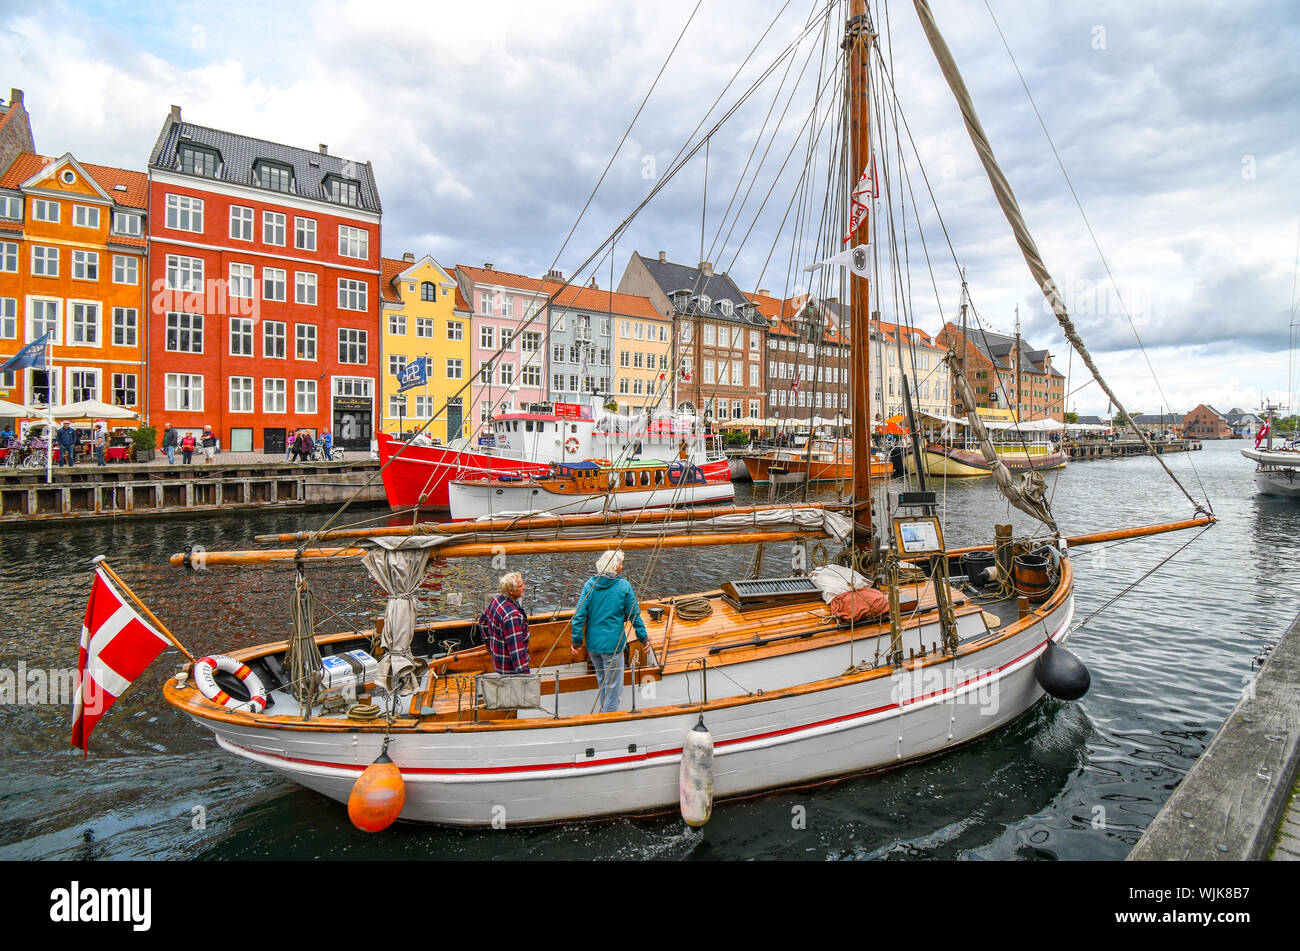 A senior man and woman dock their sailboat on the canal on an overcast day in the colorful 17th century Nyhavn district in Copenhagen, Denmark. Stock Photo